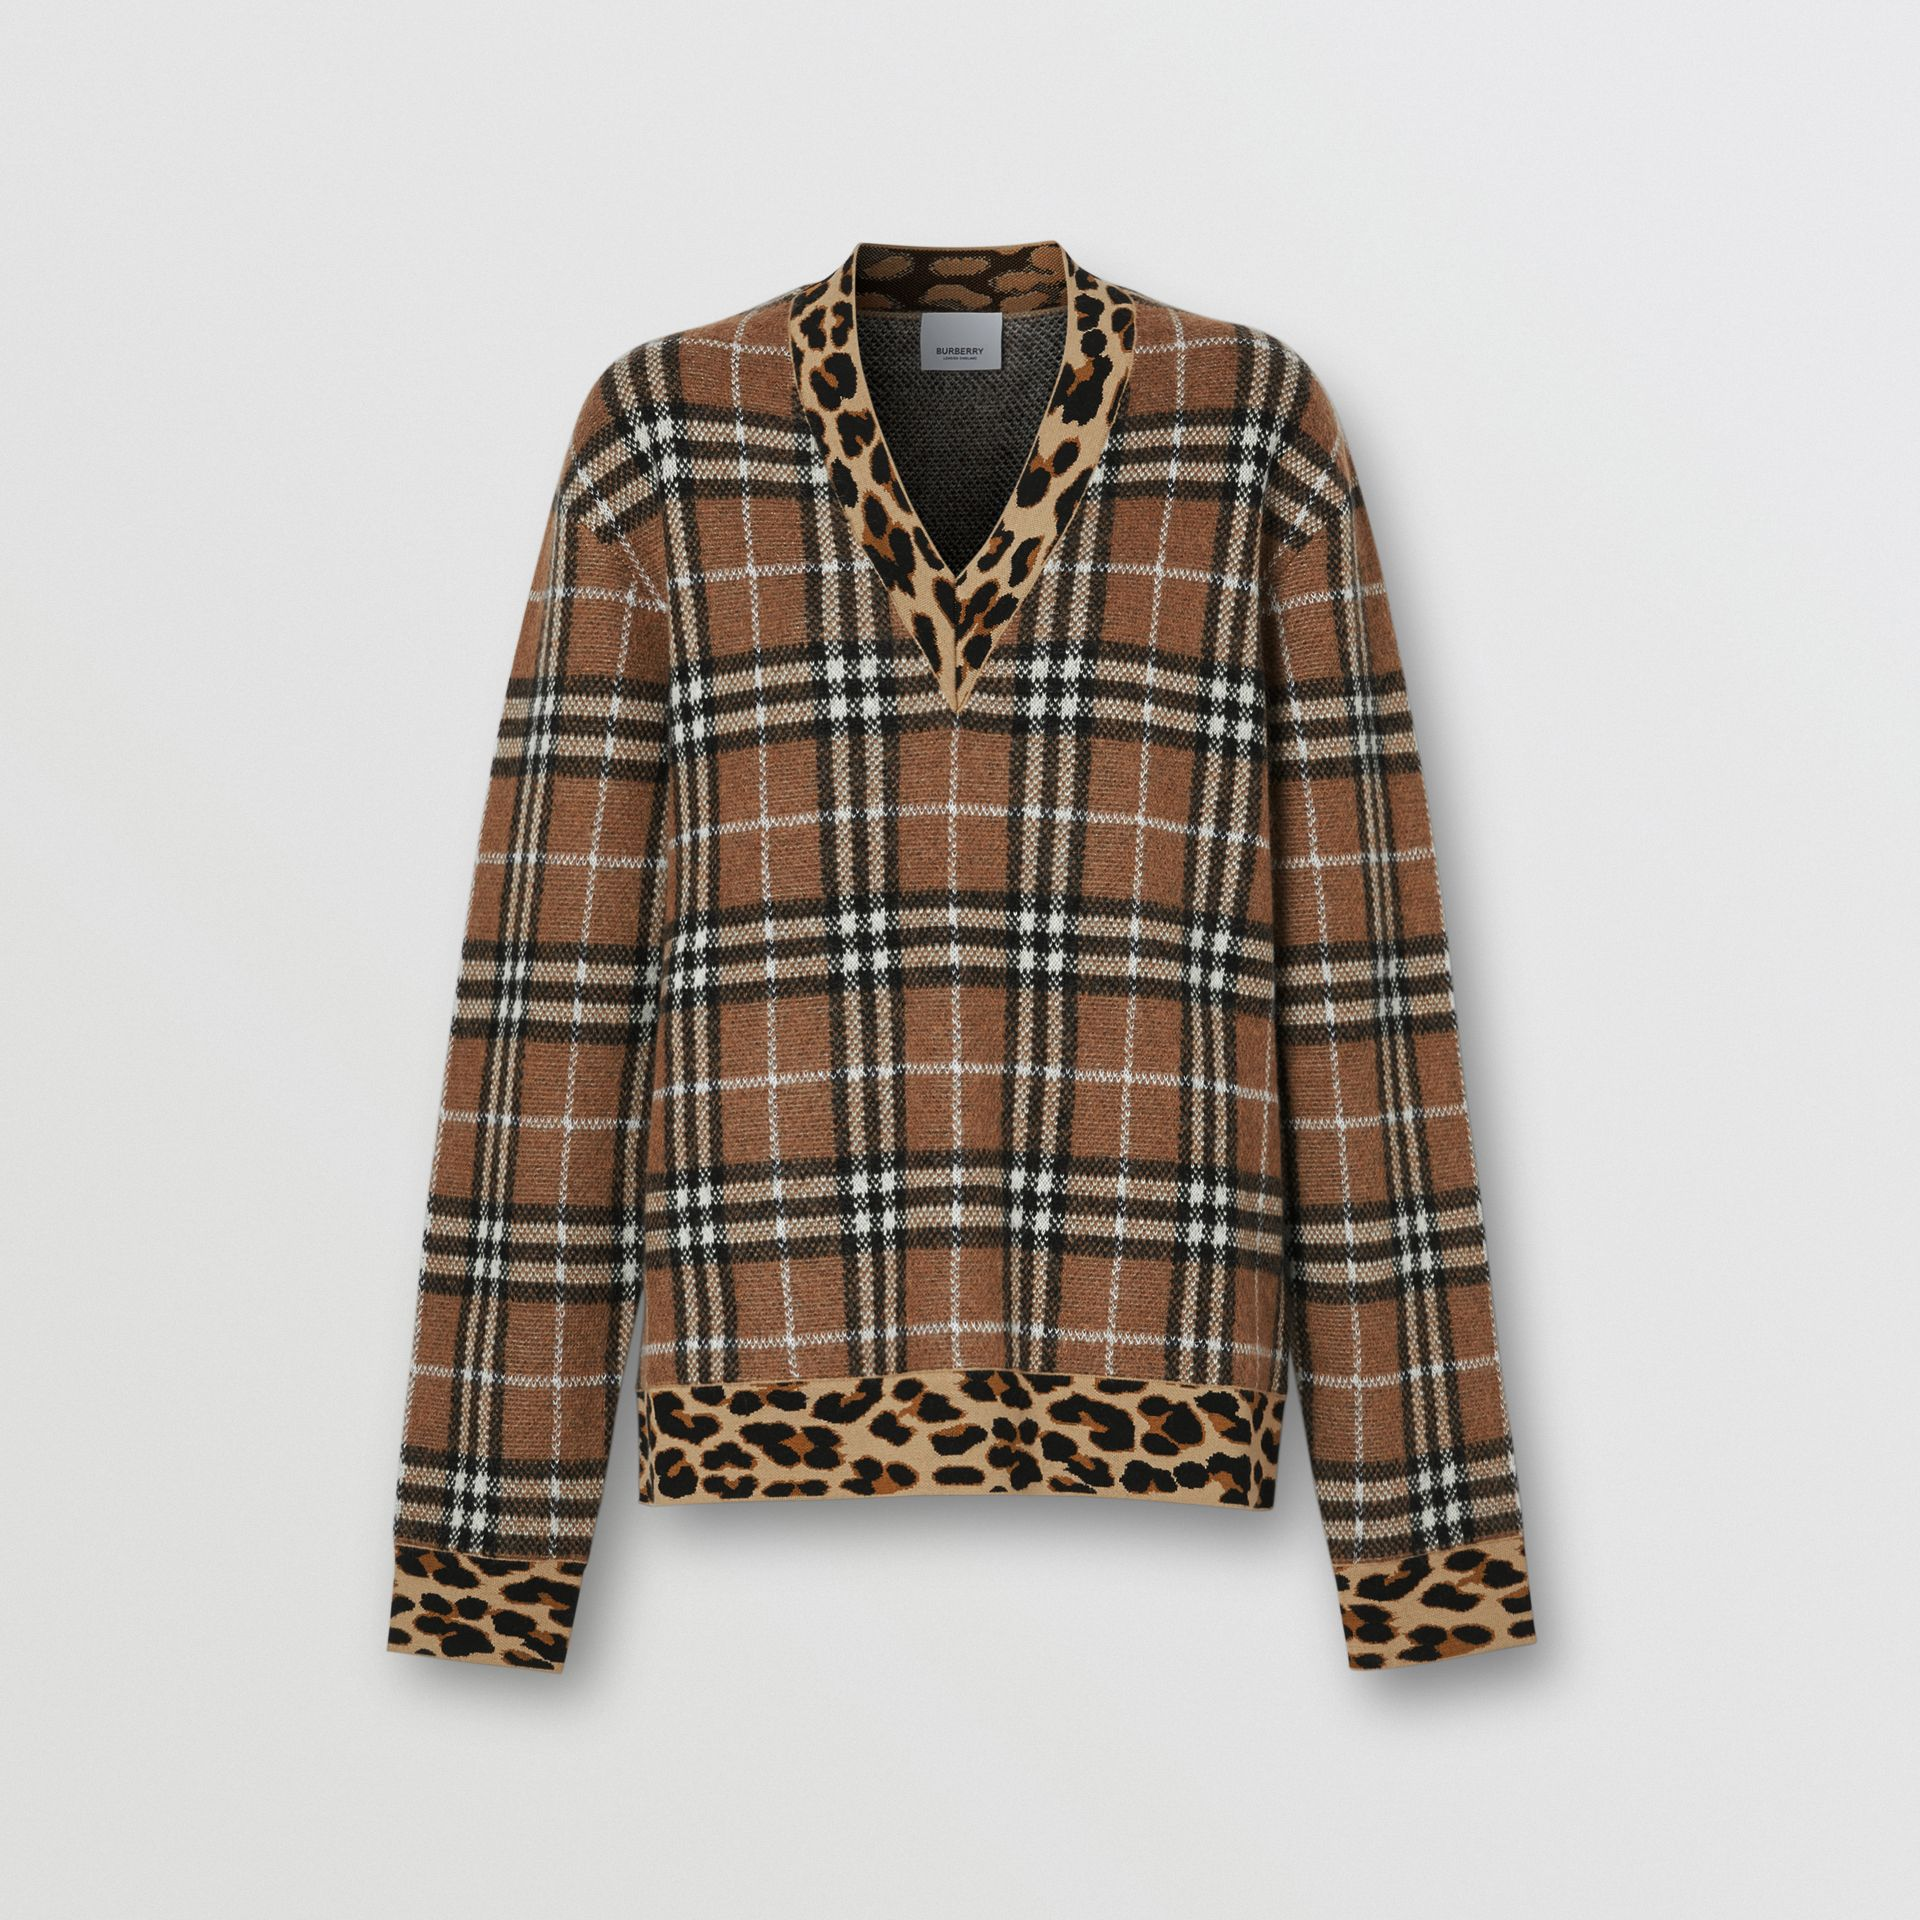 Leopard Detail Vintage Check Cashmere Blend Sweater in Archive Beige - Women | Burberry Hong Kong S.A.R - gallery image 3